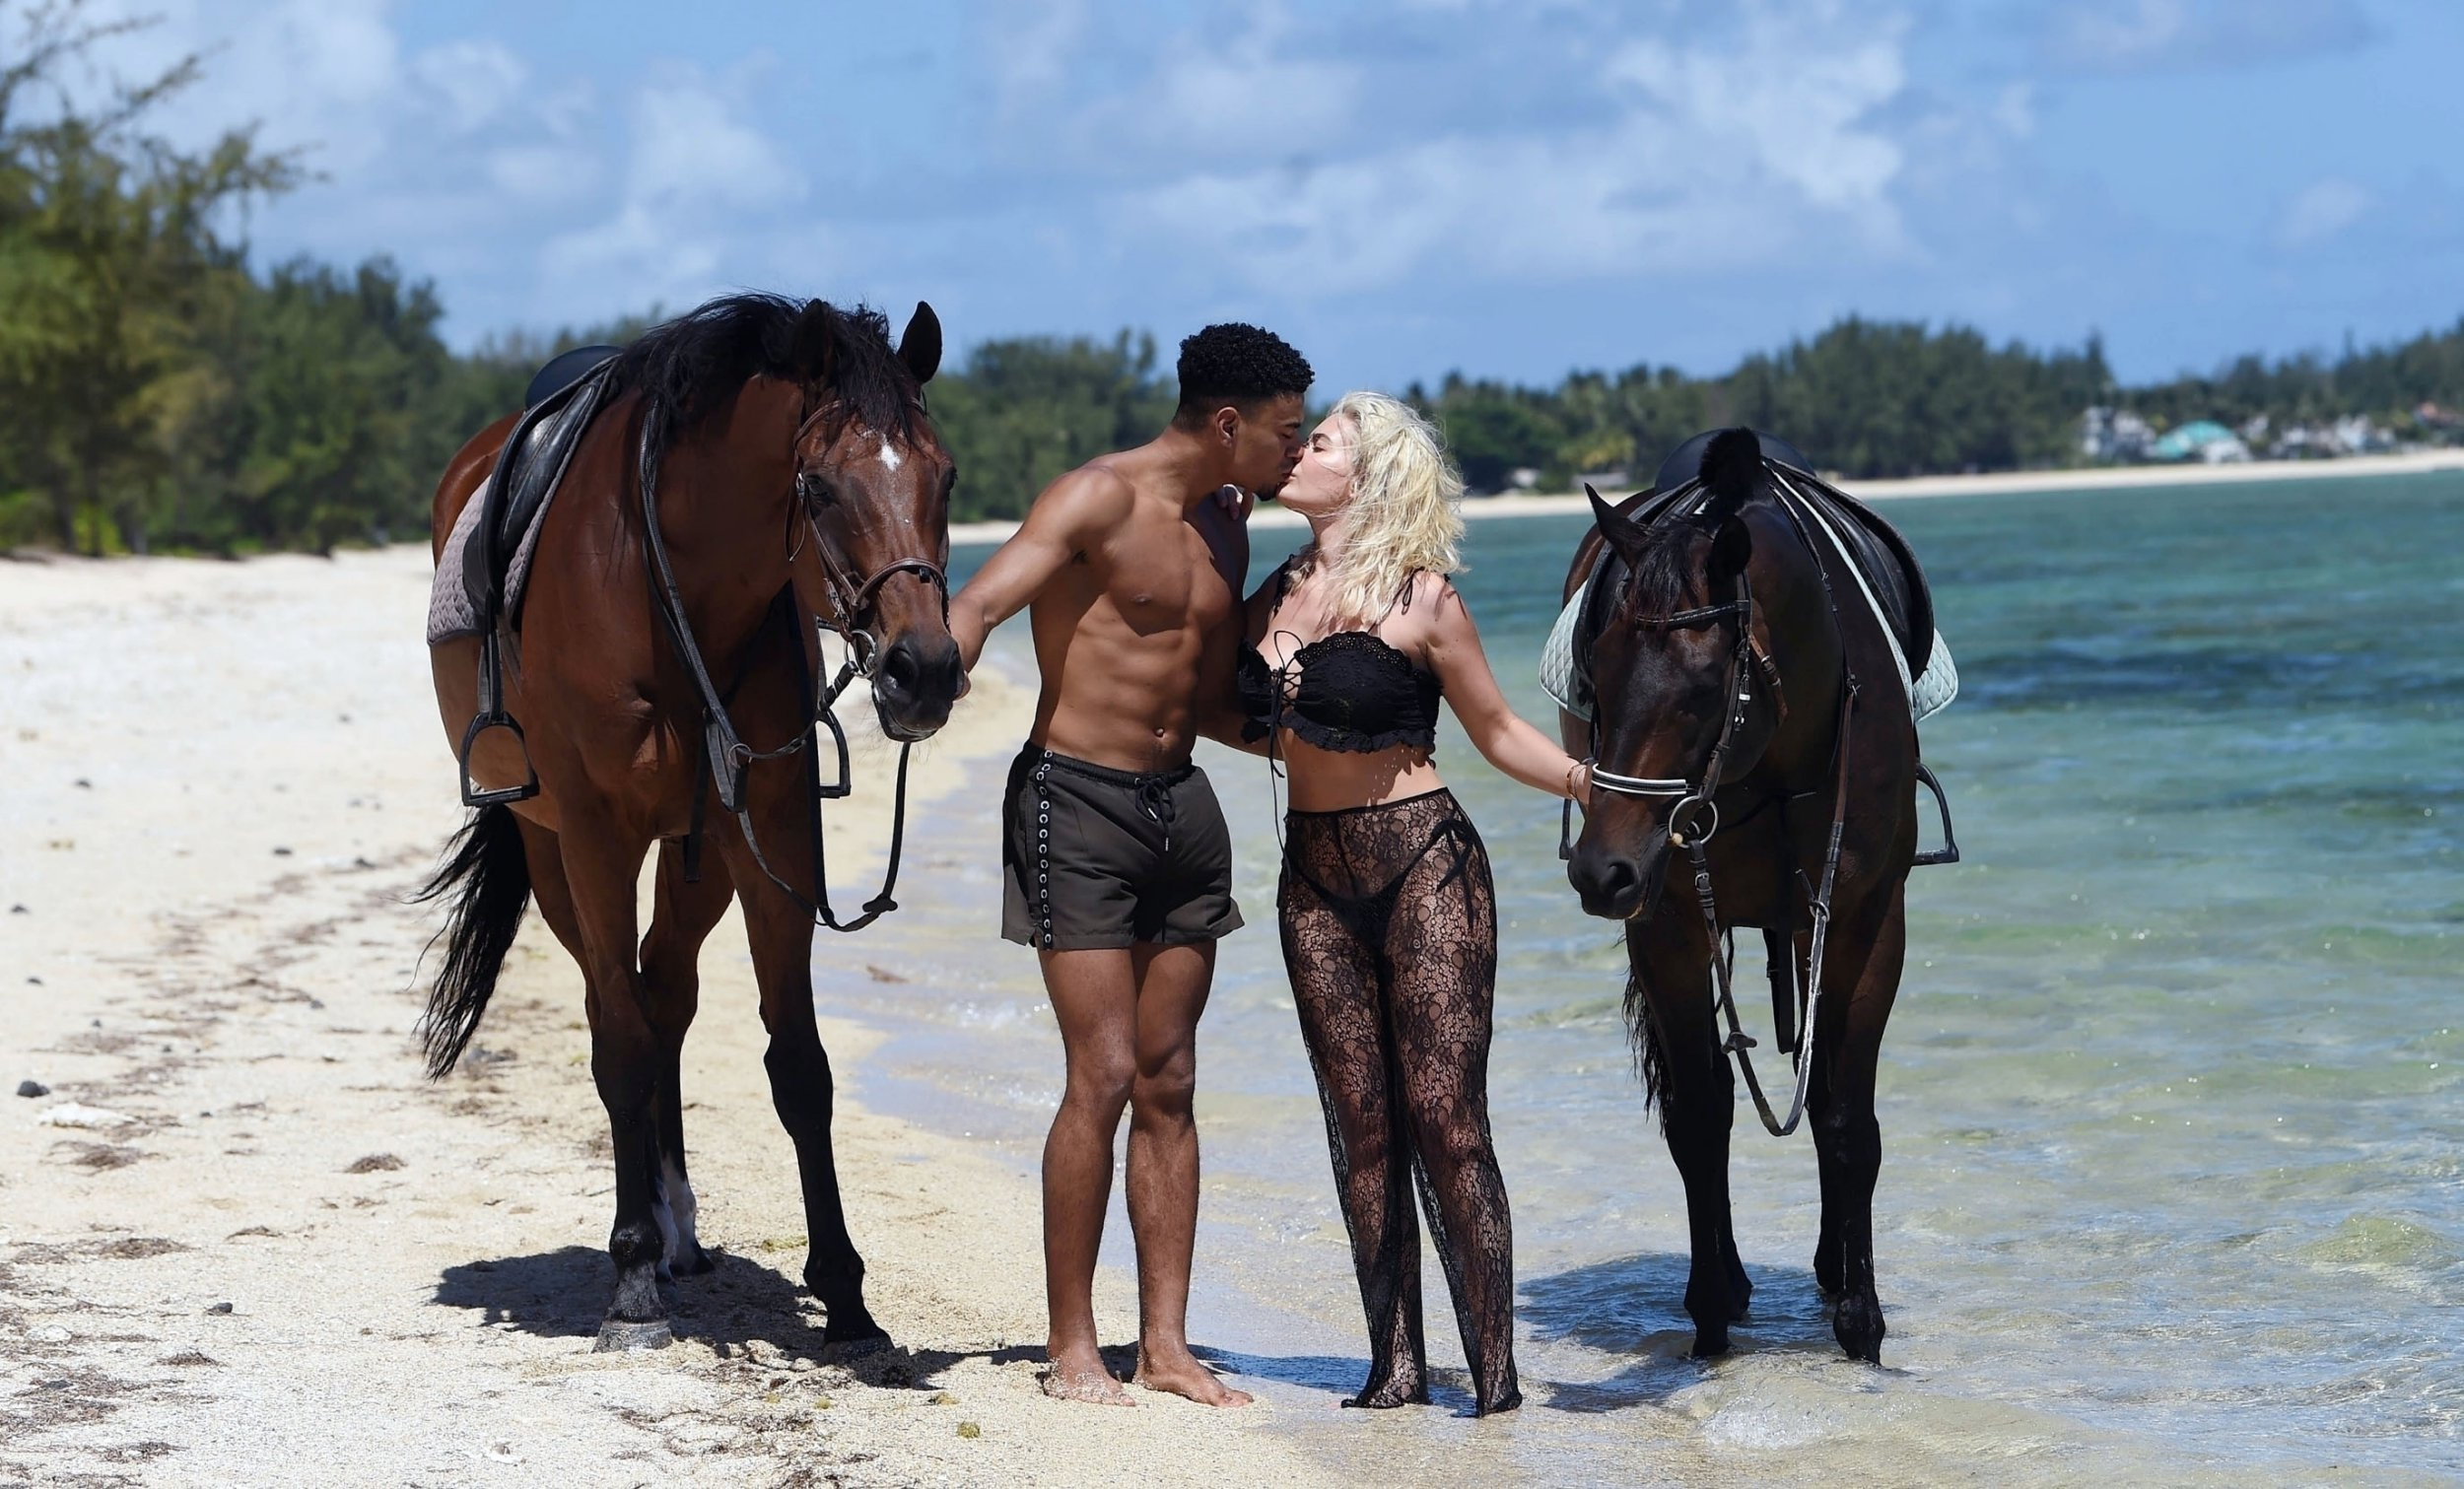 Megan Barton Hanson Heats Up The Pda With Wes Nelsonwhile Posing With Horses